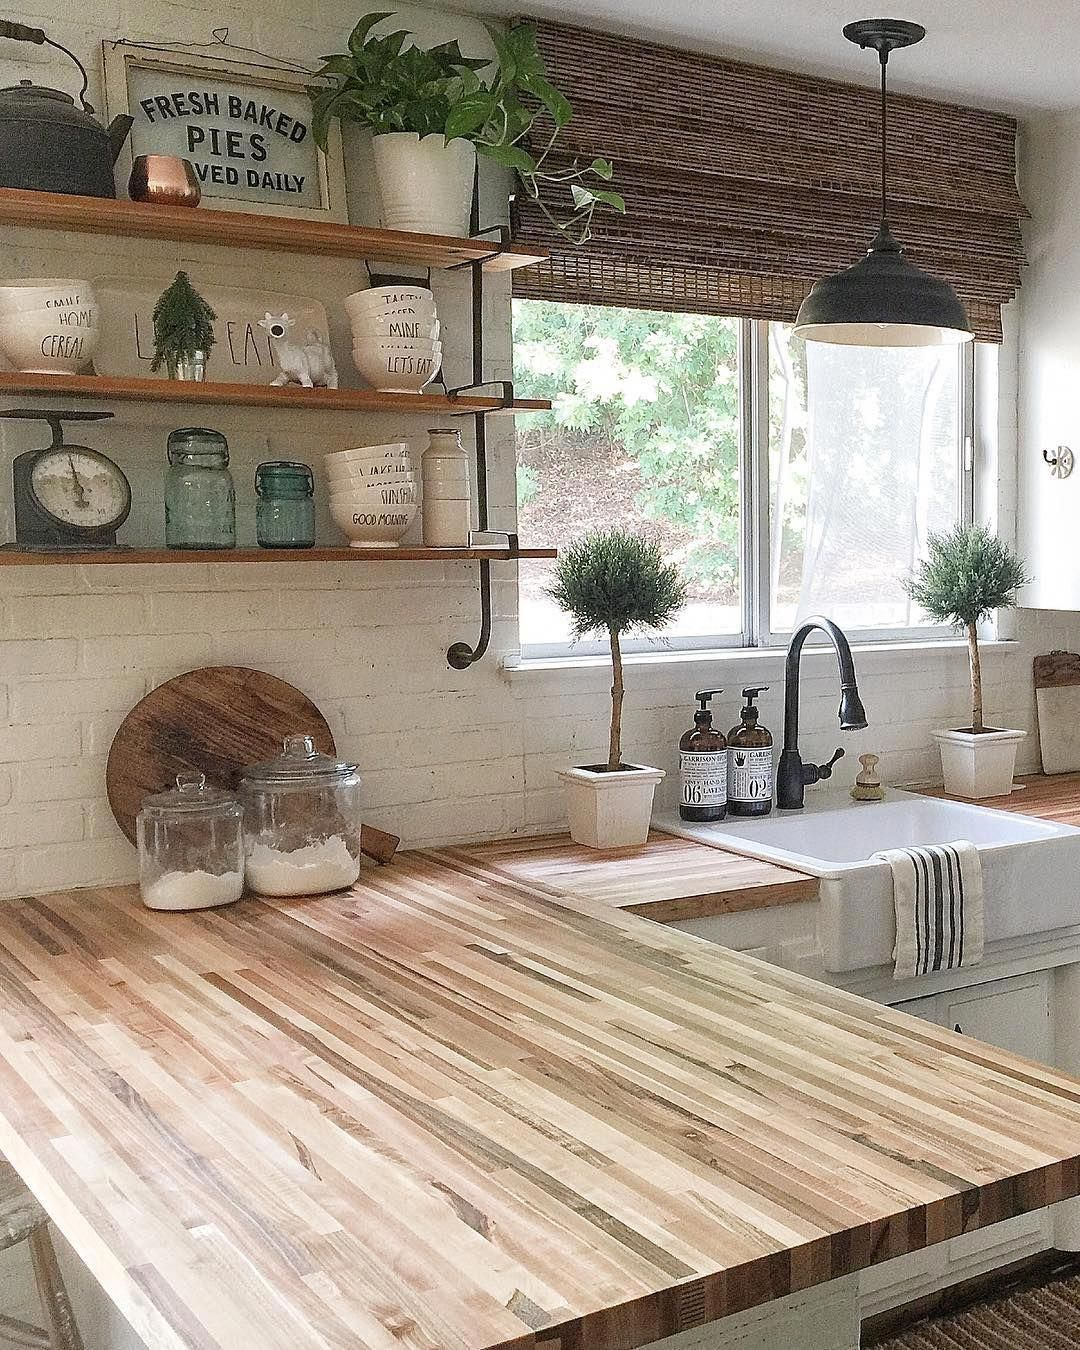 Pinterest Itssamsworld Farmhouse Style Kitchen Farmhouse Kitchen Countertops Farmhouse Sink Kitchen